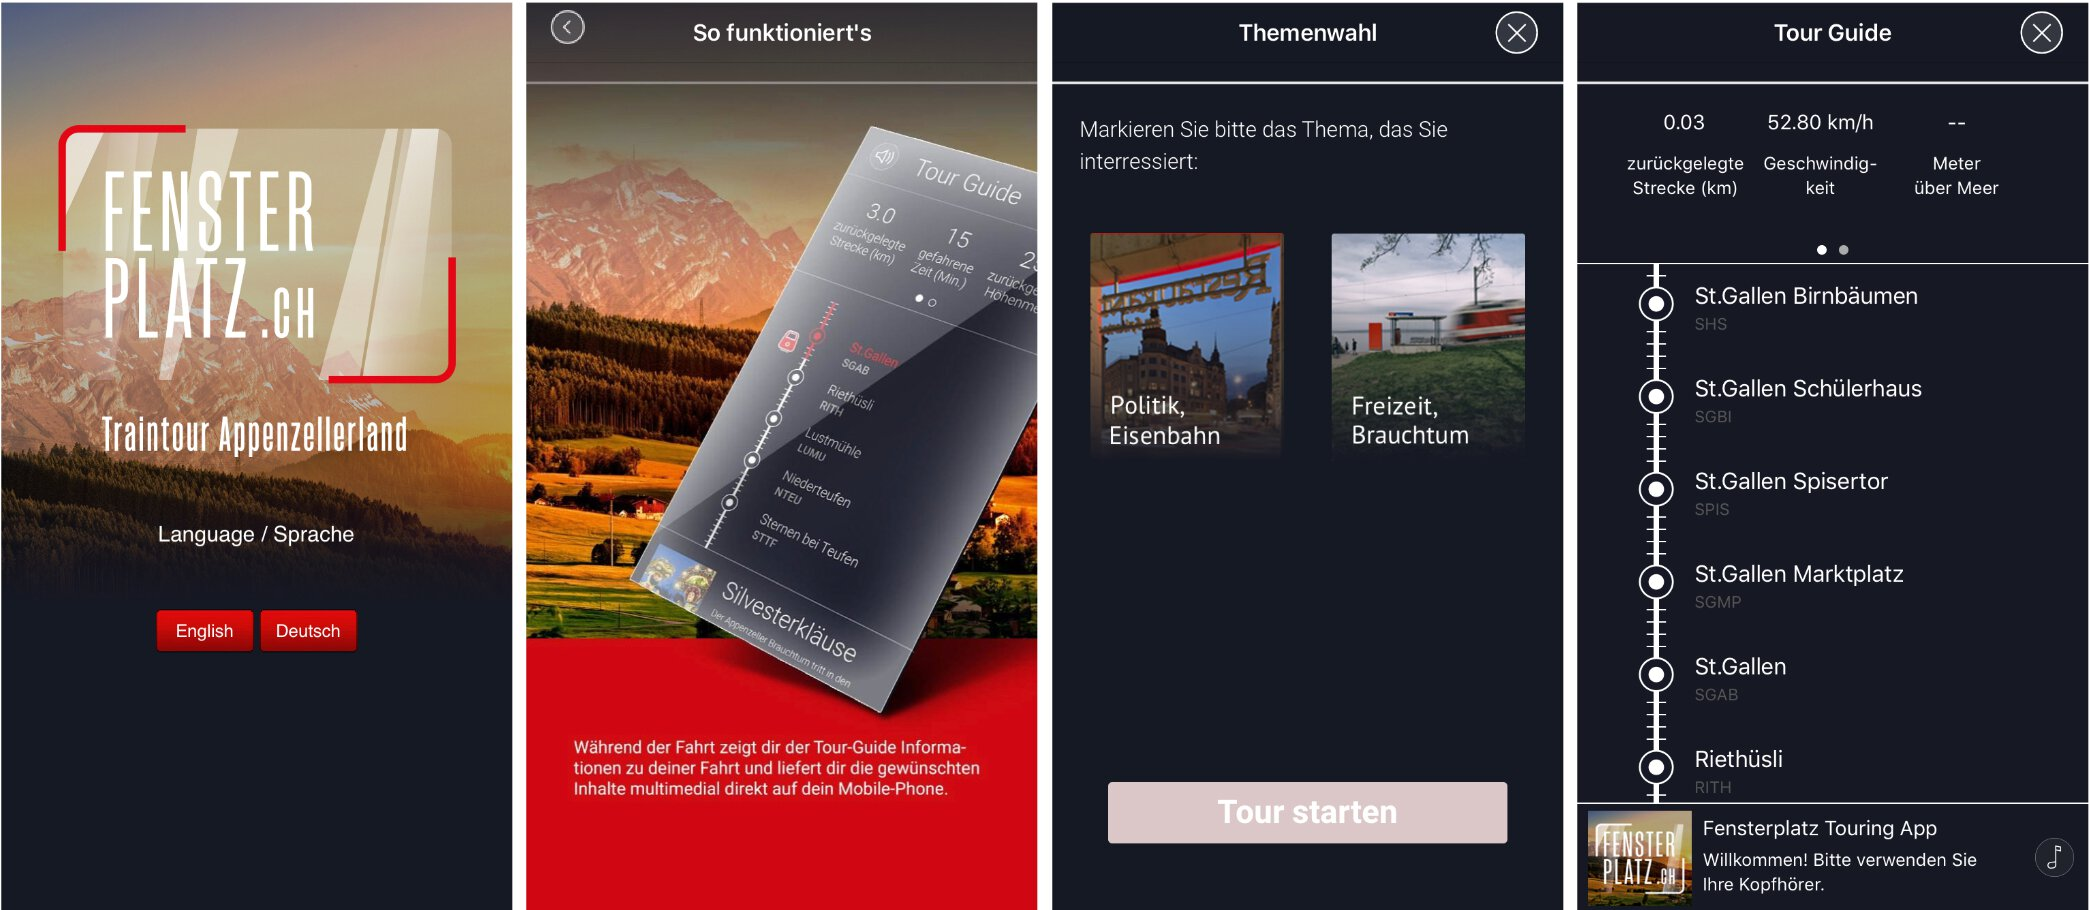 A moving listening experience - Digital travel guide for Swiss Railways